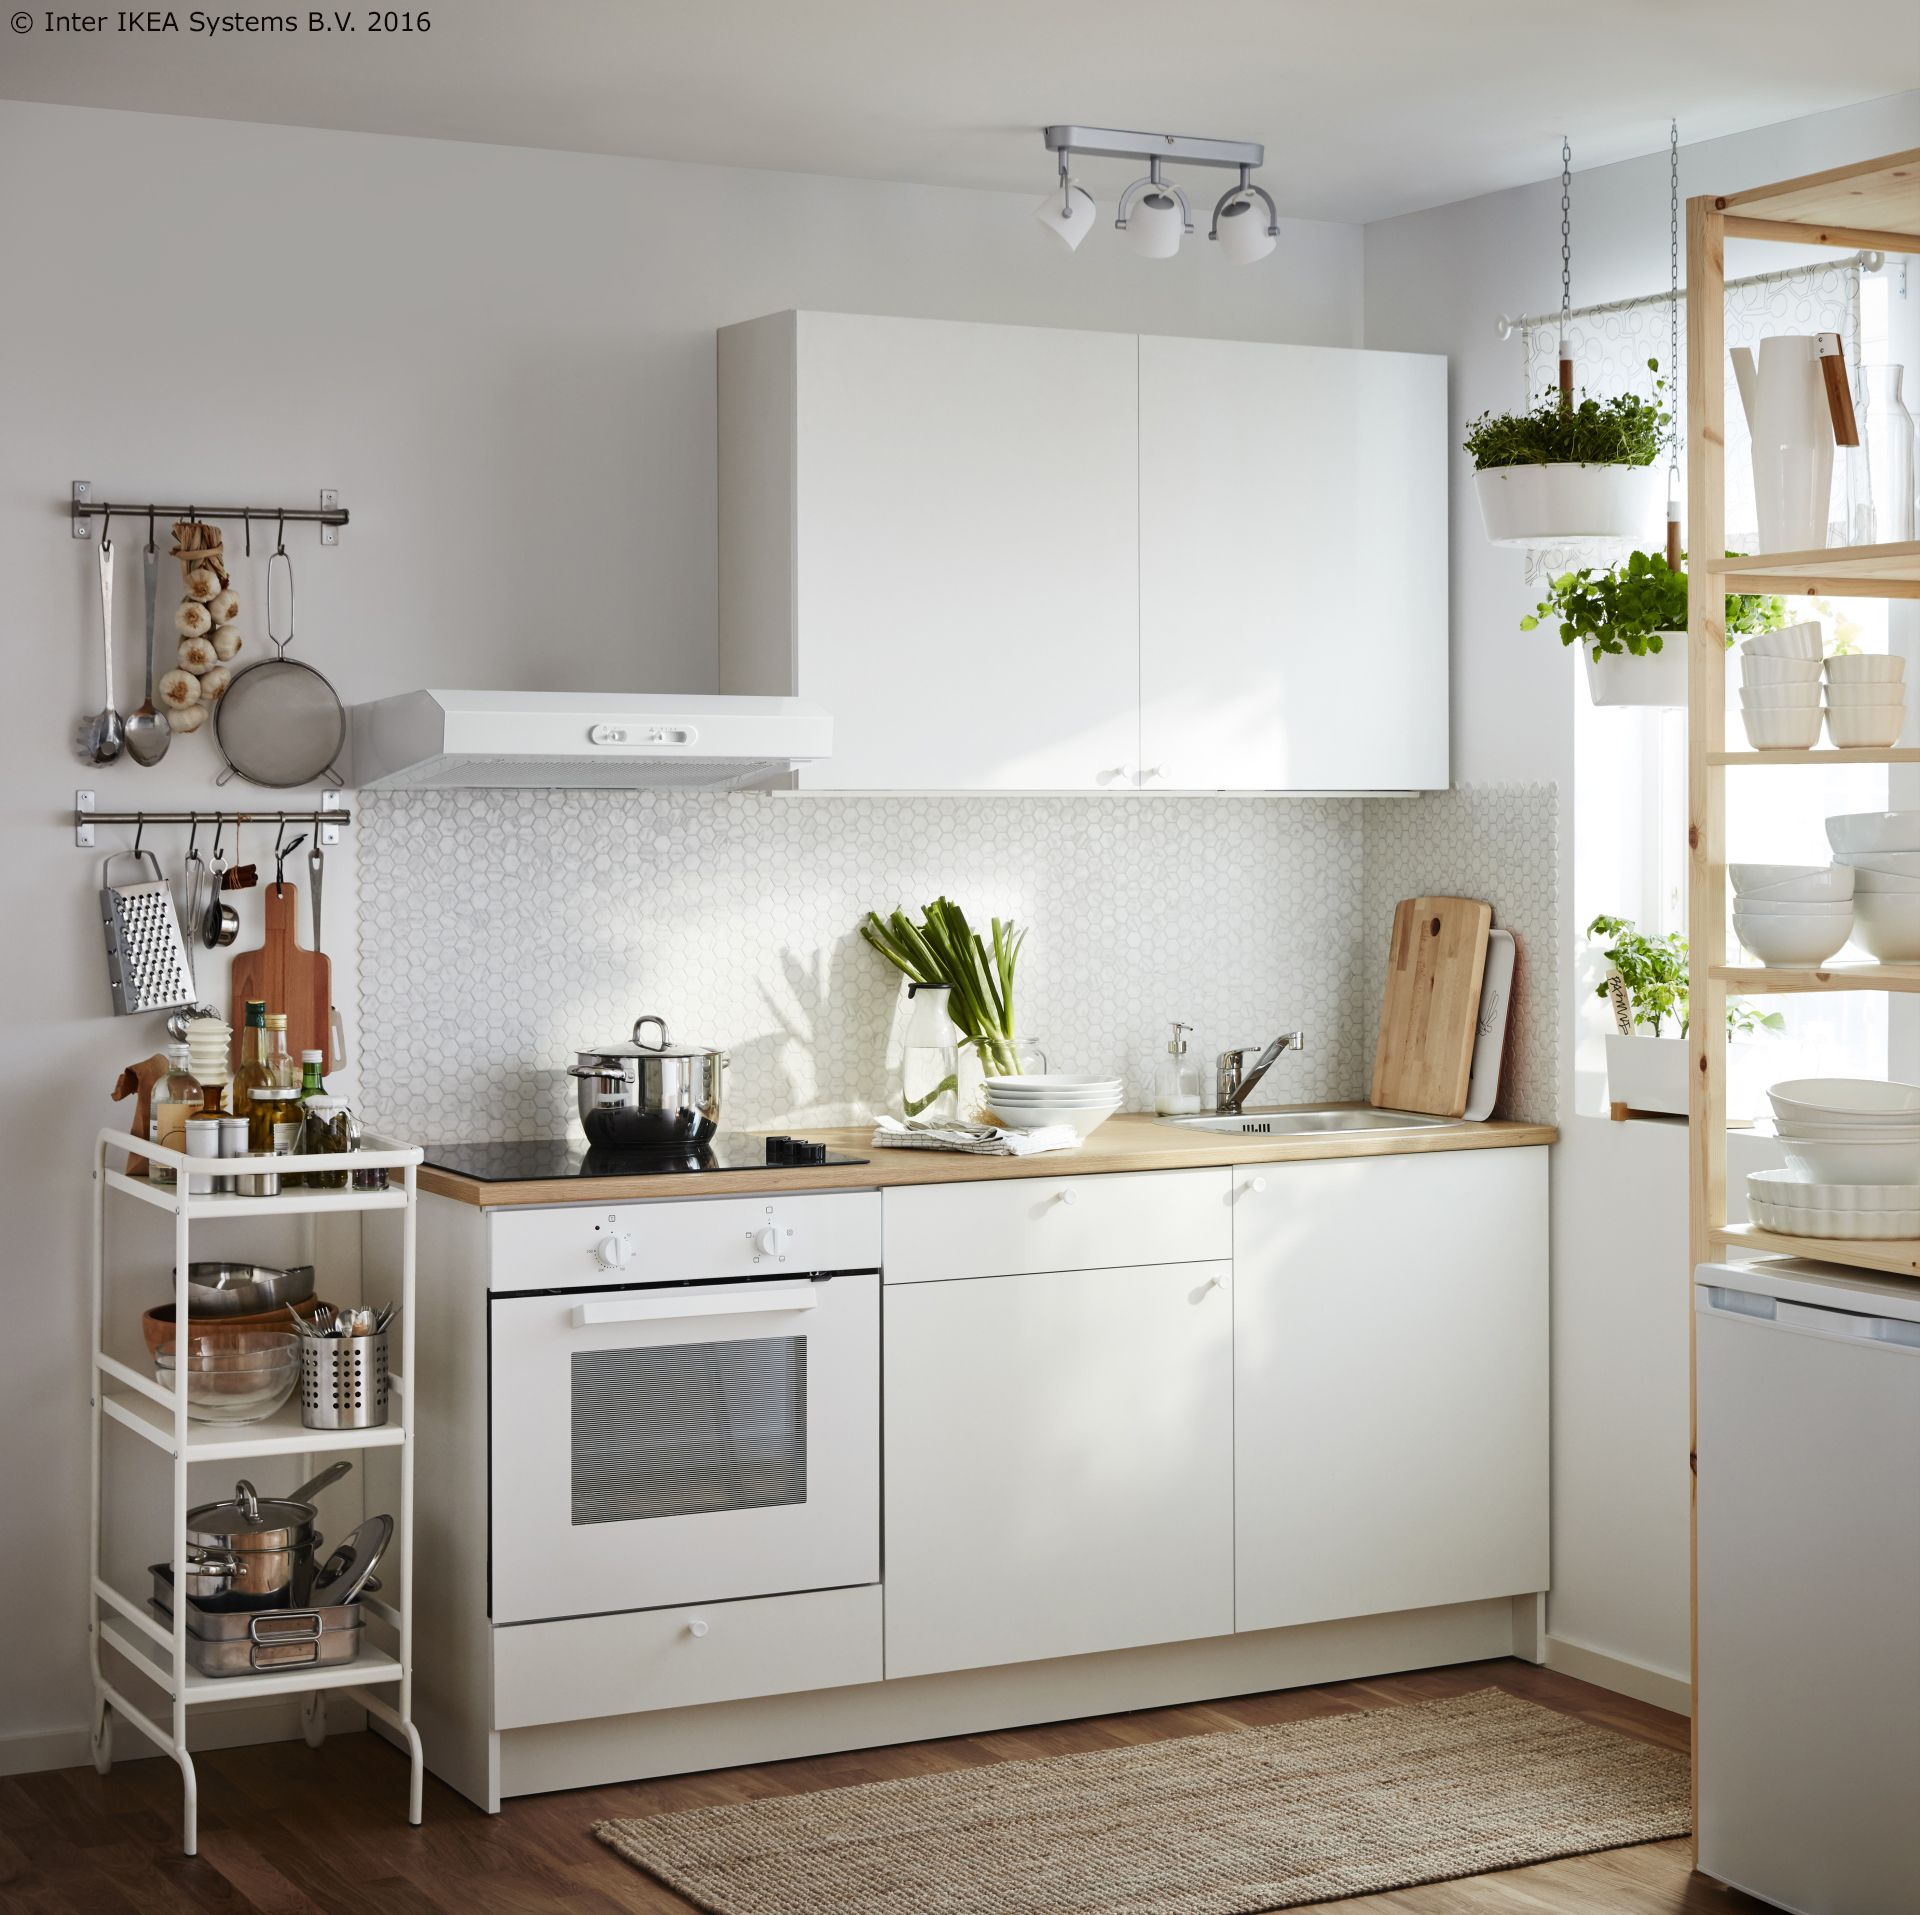 10 Ikea Small Kitchen Ideas Small Kitchen Kitchen Remodel Kitchen Design